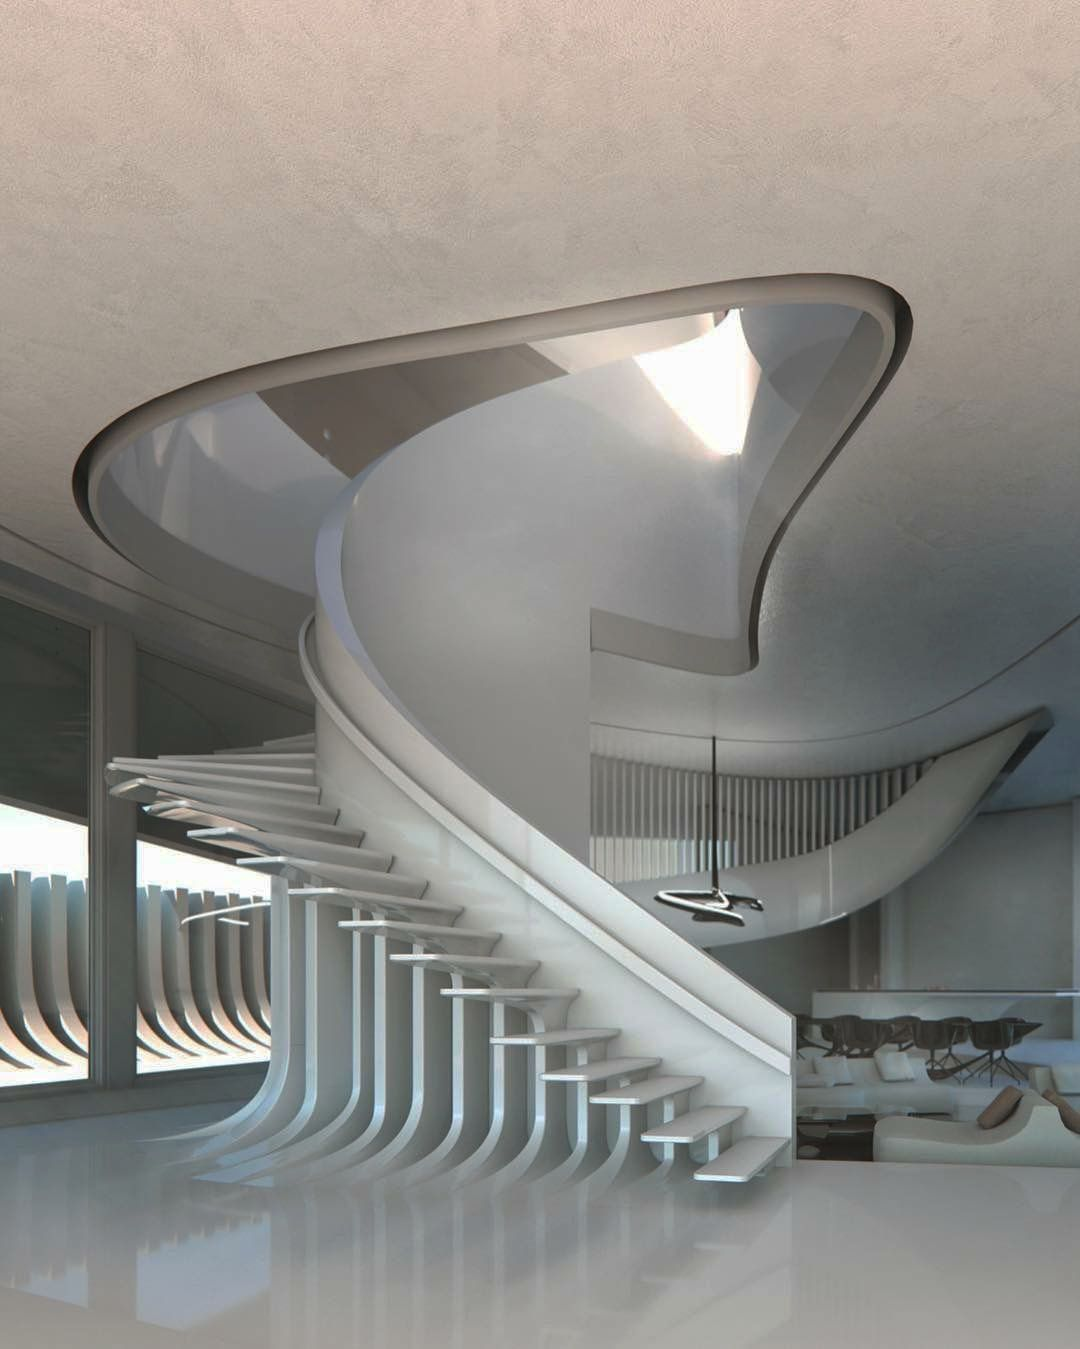 Best 13 Spiral Staircase Design Ideas For Small Spaces 400 x 300